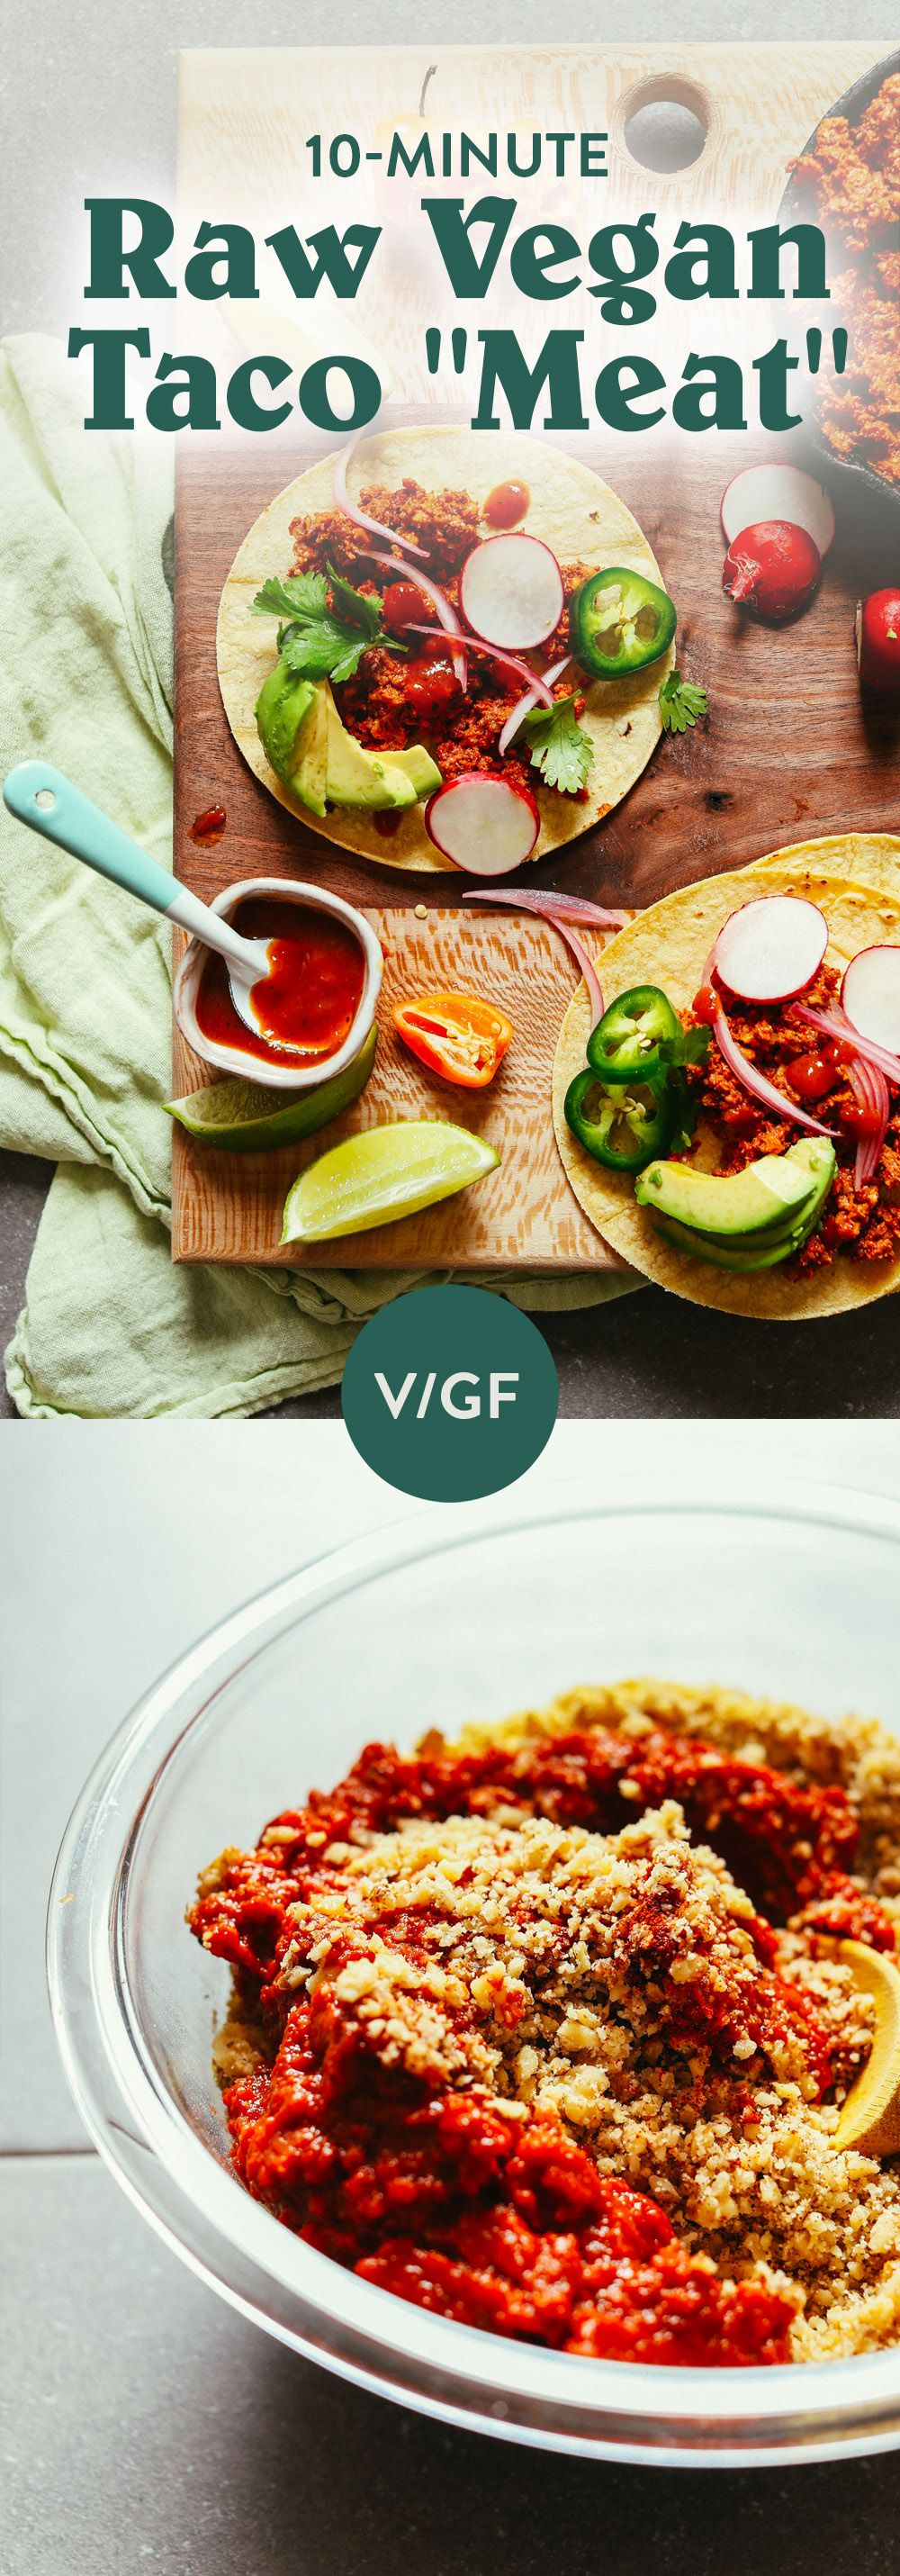 10 Minute Raw Vegan Taco Meat